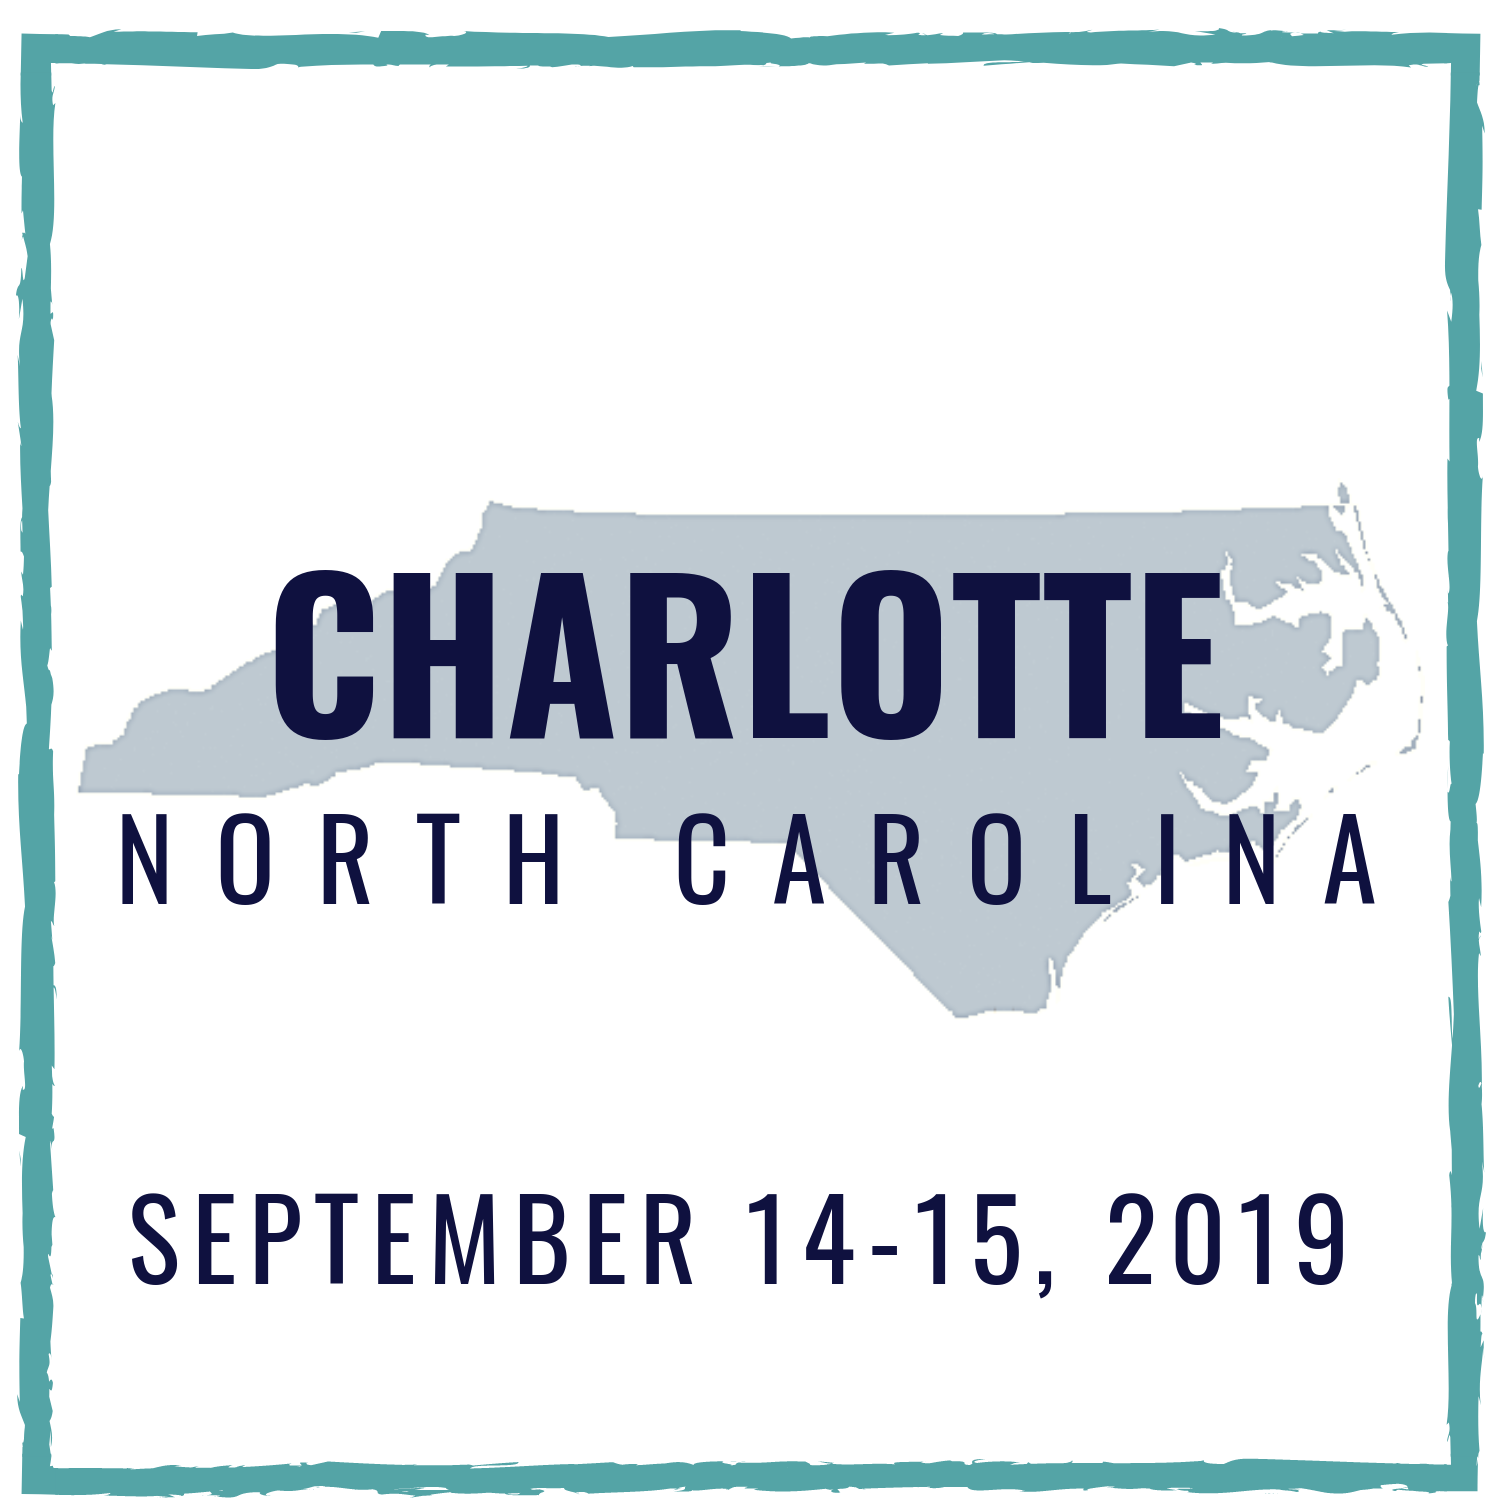 Copy of north carolina dog training seminar